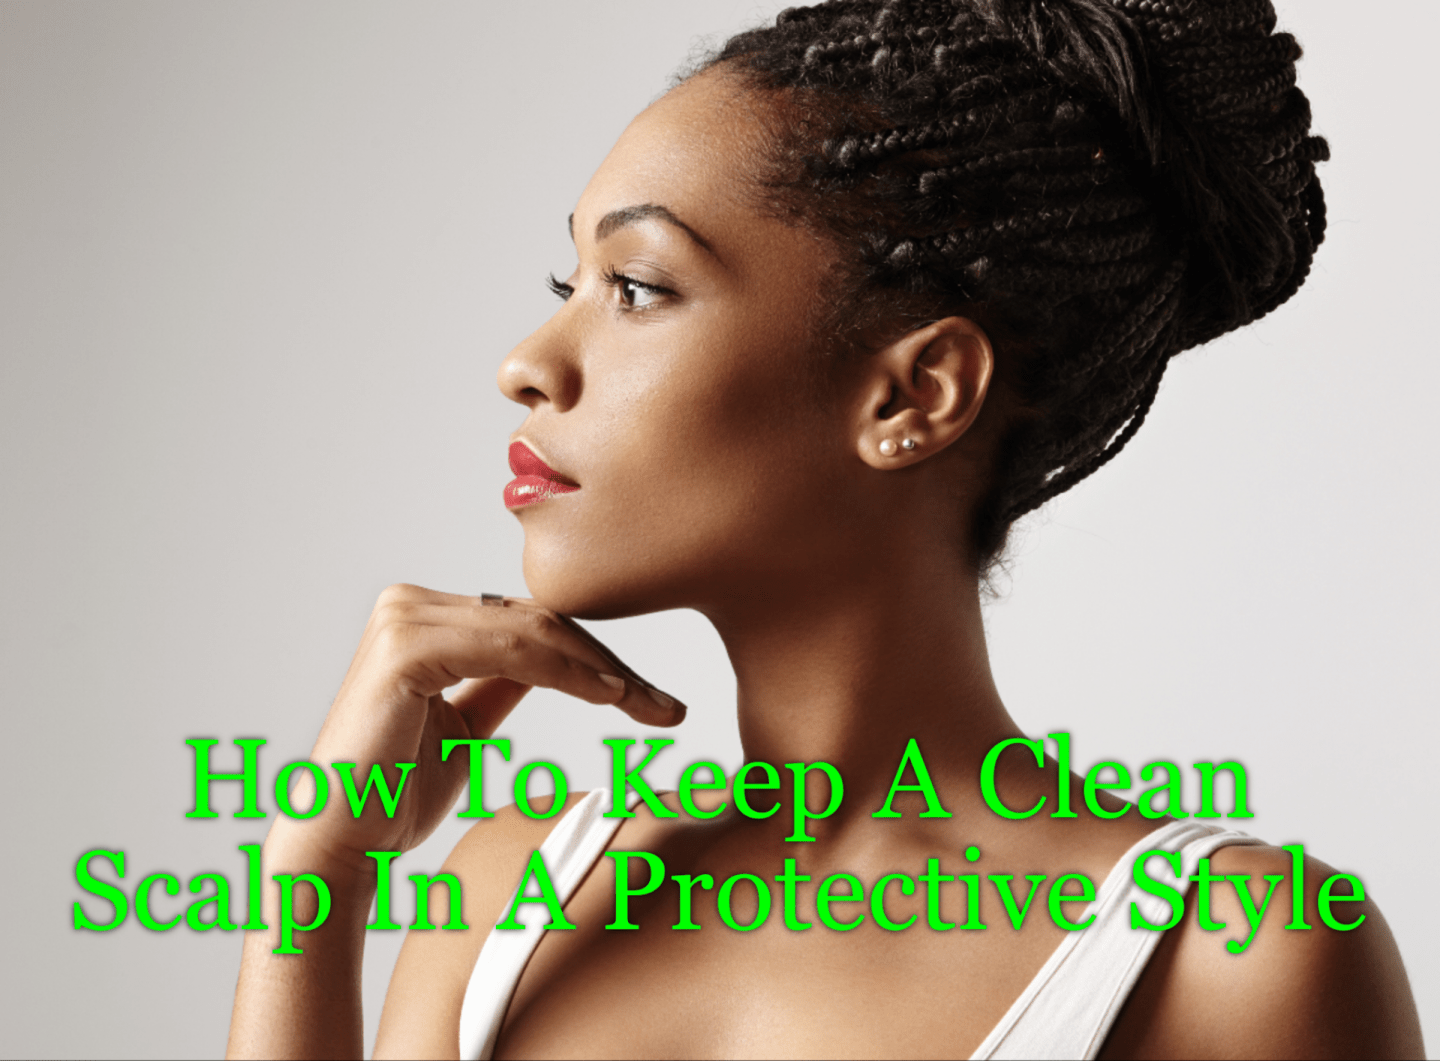 Clean scalp while wearing a protective style is crucial to keeping your hair healthy. We've got our top 7 products for you!